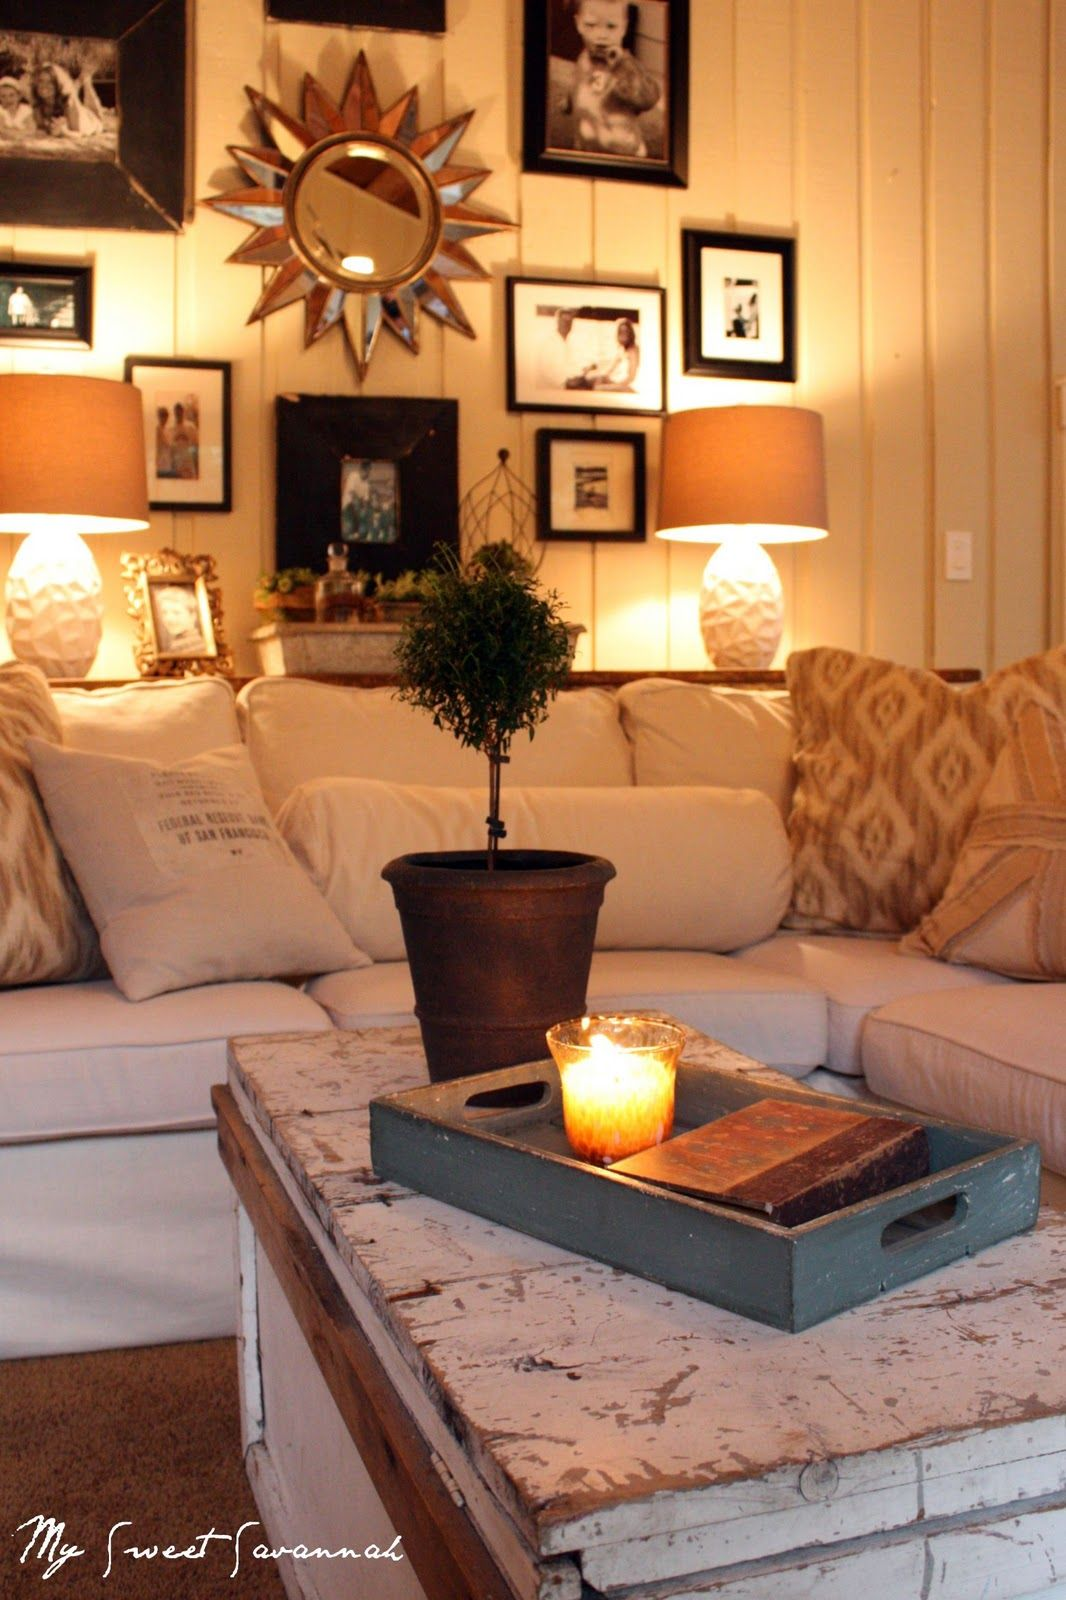 Cheap Table Lamps For Living Room So Cozy Cheap Table Between Wall And Sofa Allows For